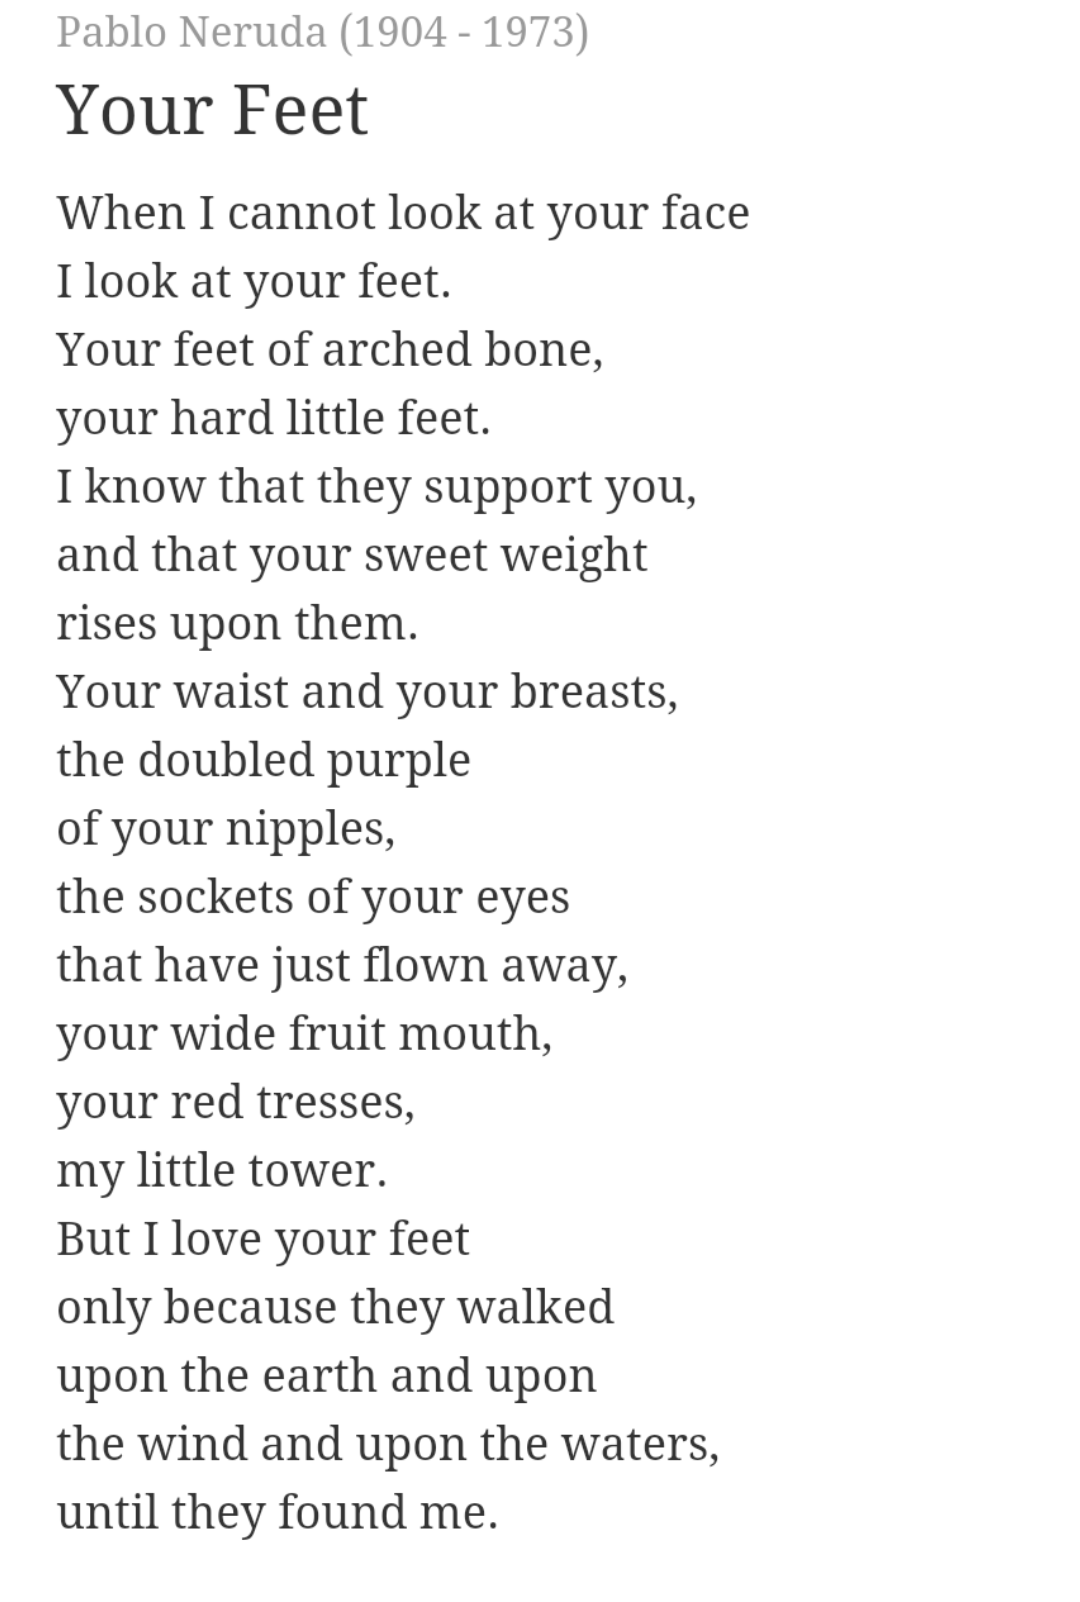 Free Love Poems And Quotes Your Feet Pablo Neruda  Google Search  Love Interest  Pinterest